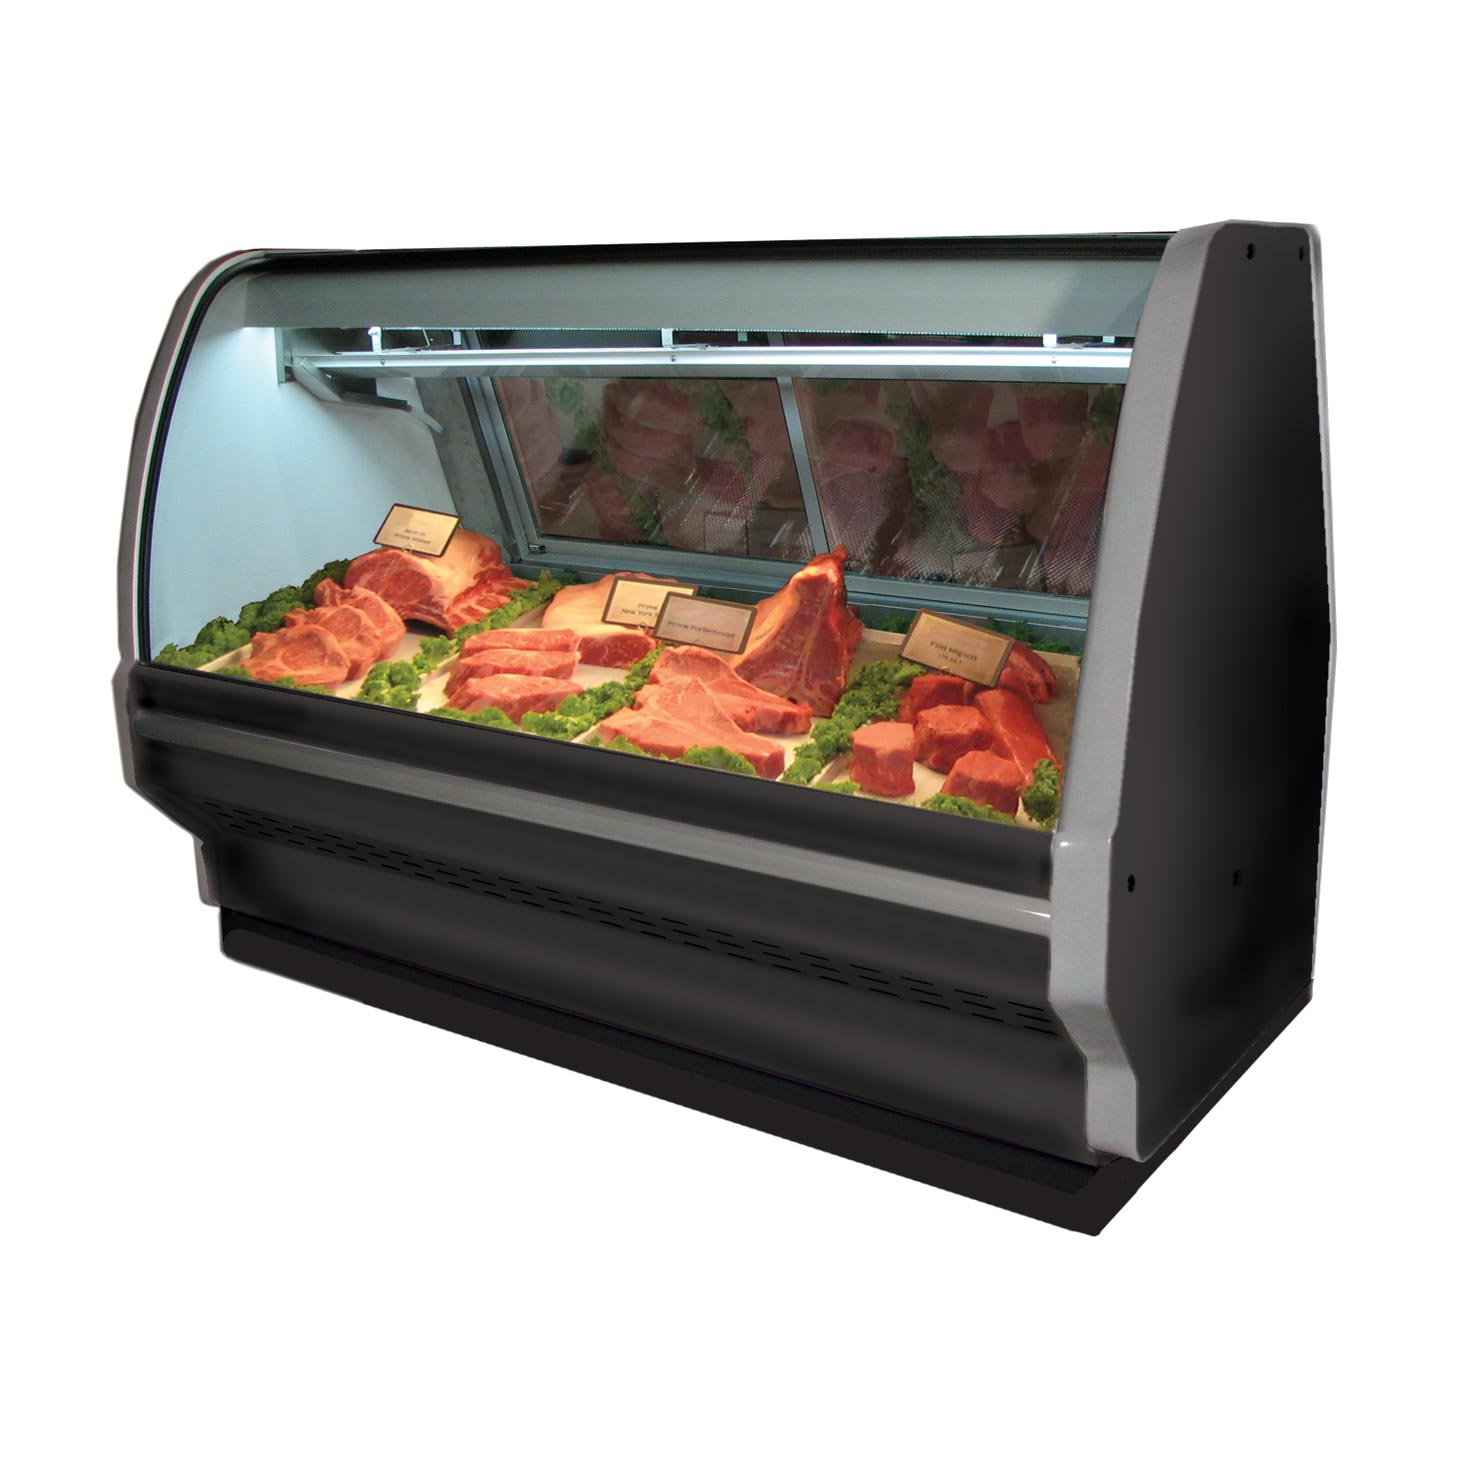 Howard-McCray SC-CMS40E-6C-BE-LED display case, red meat deli